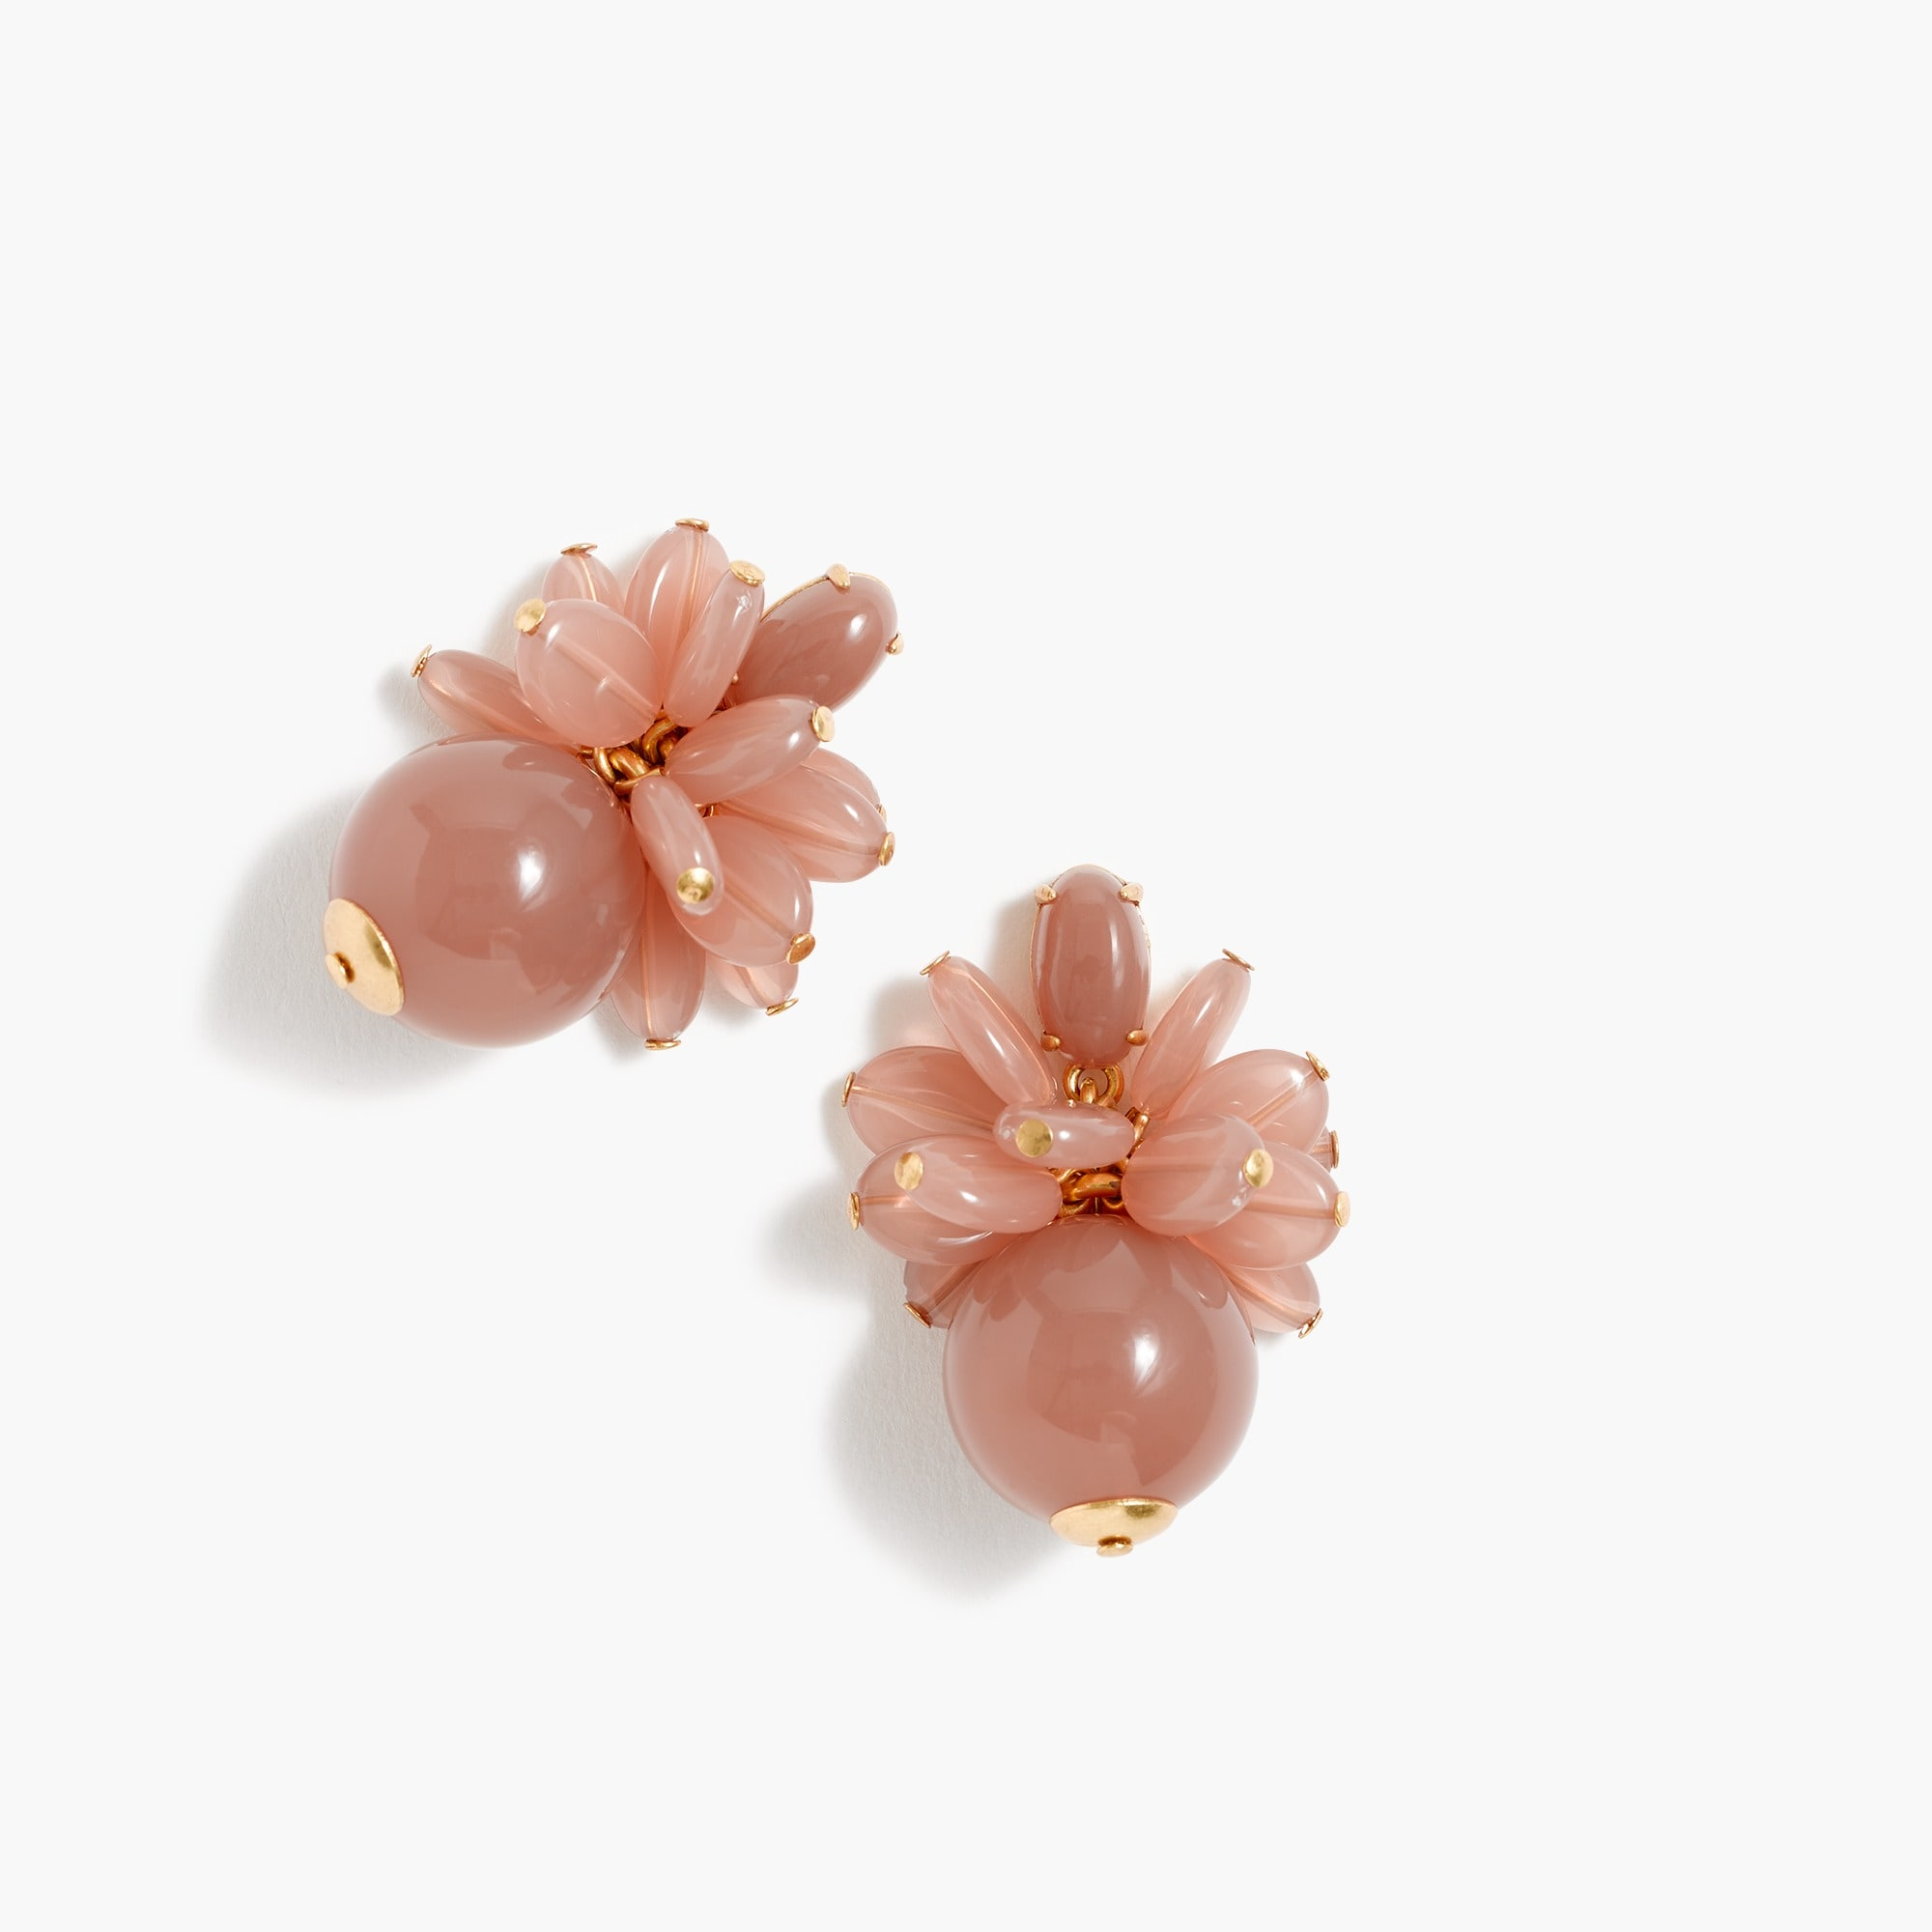 blossom bauble earrings : women jewelry shop